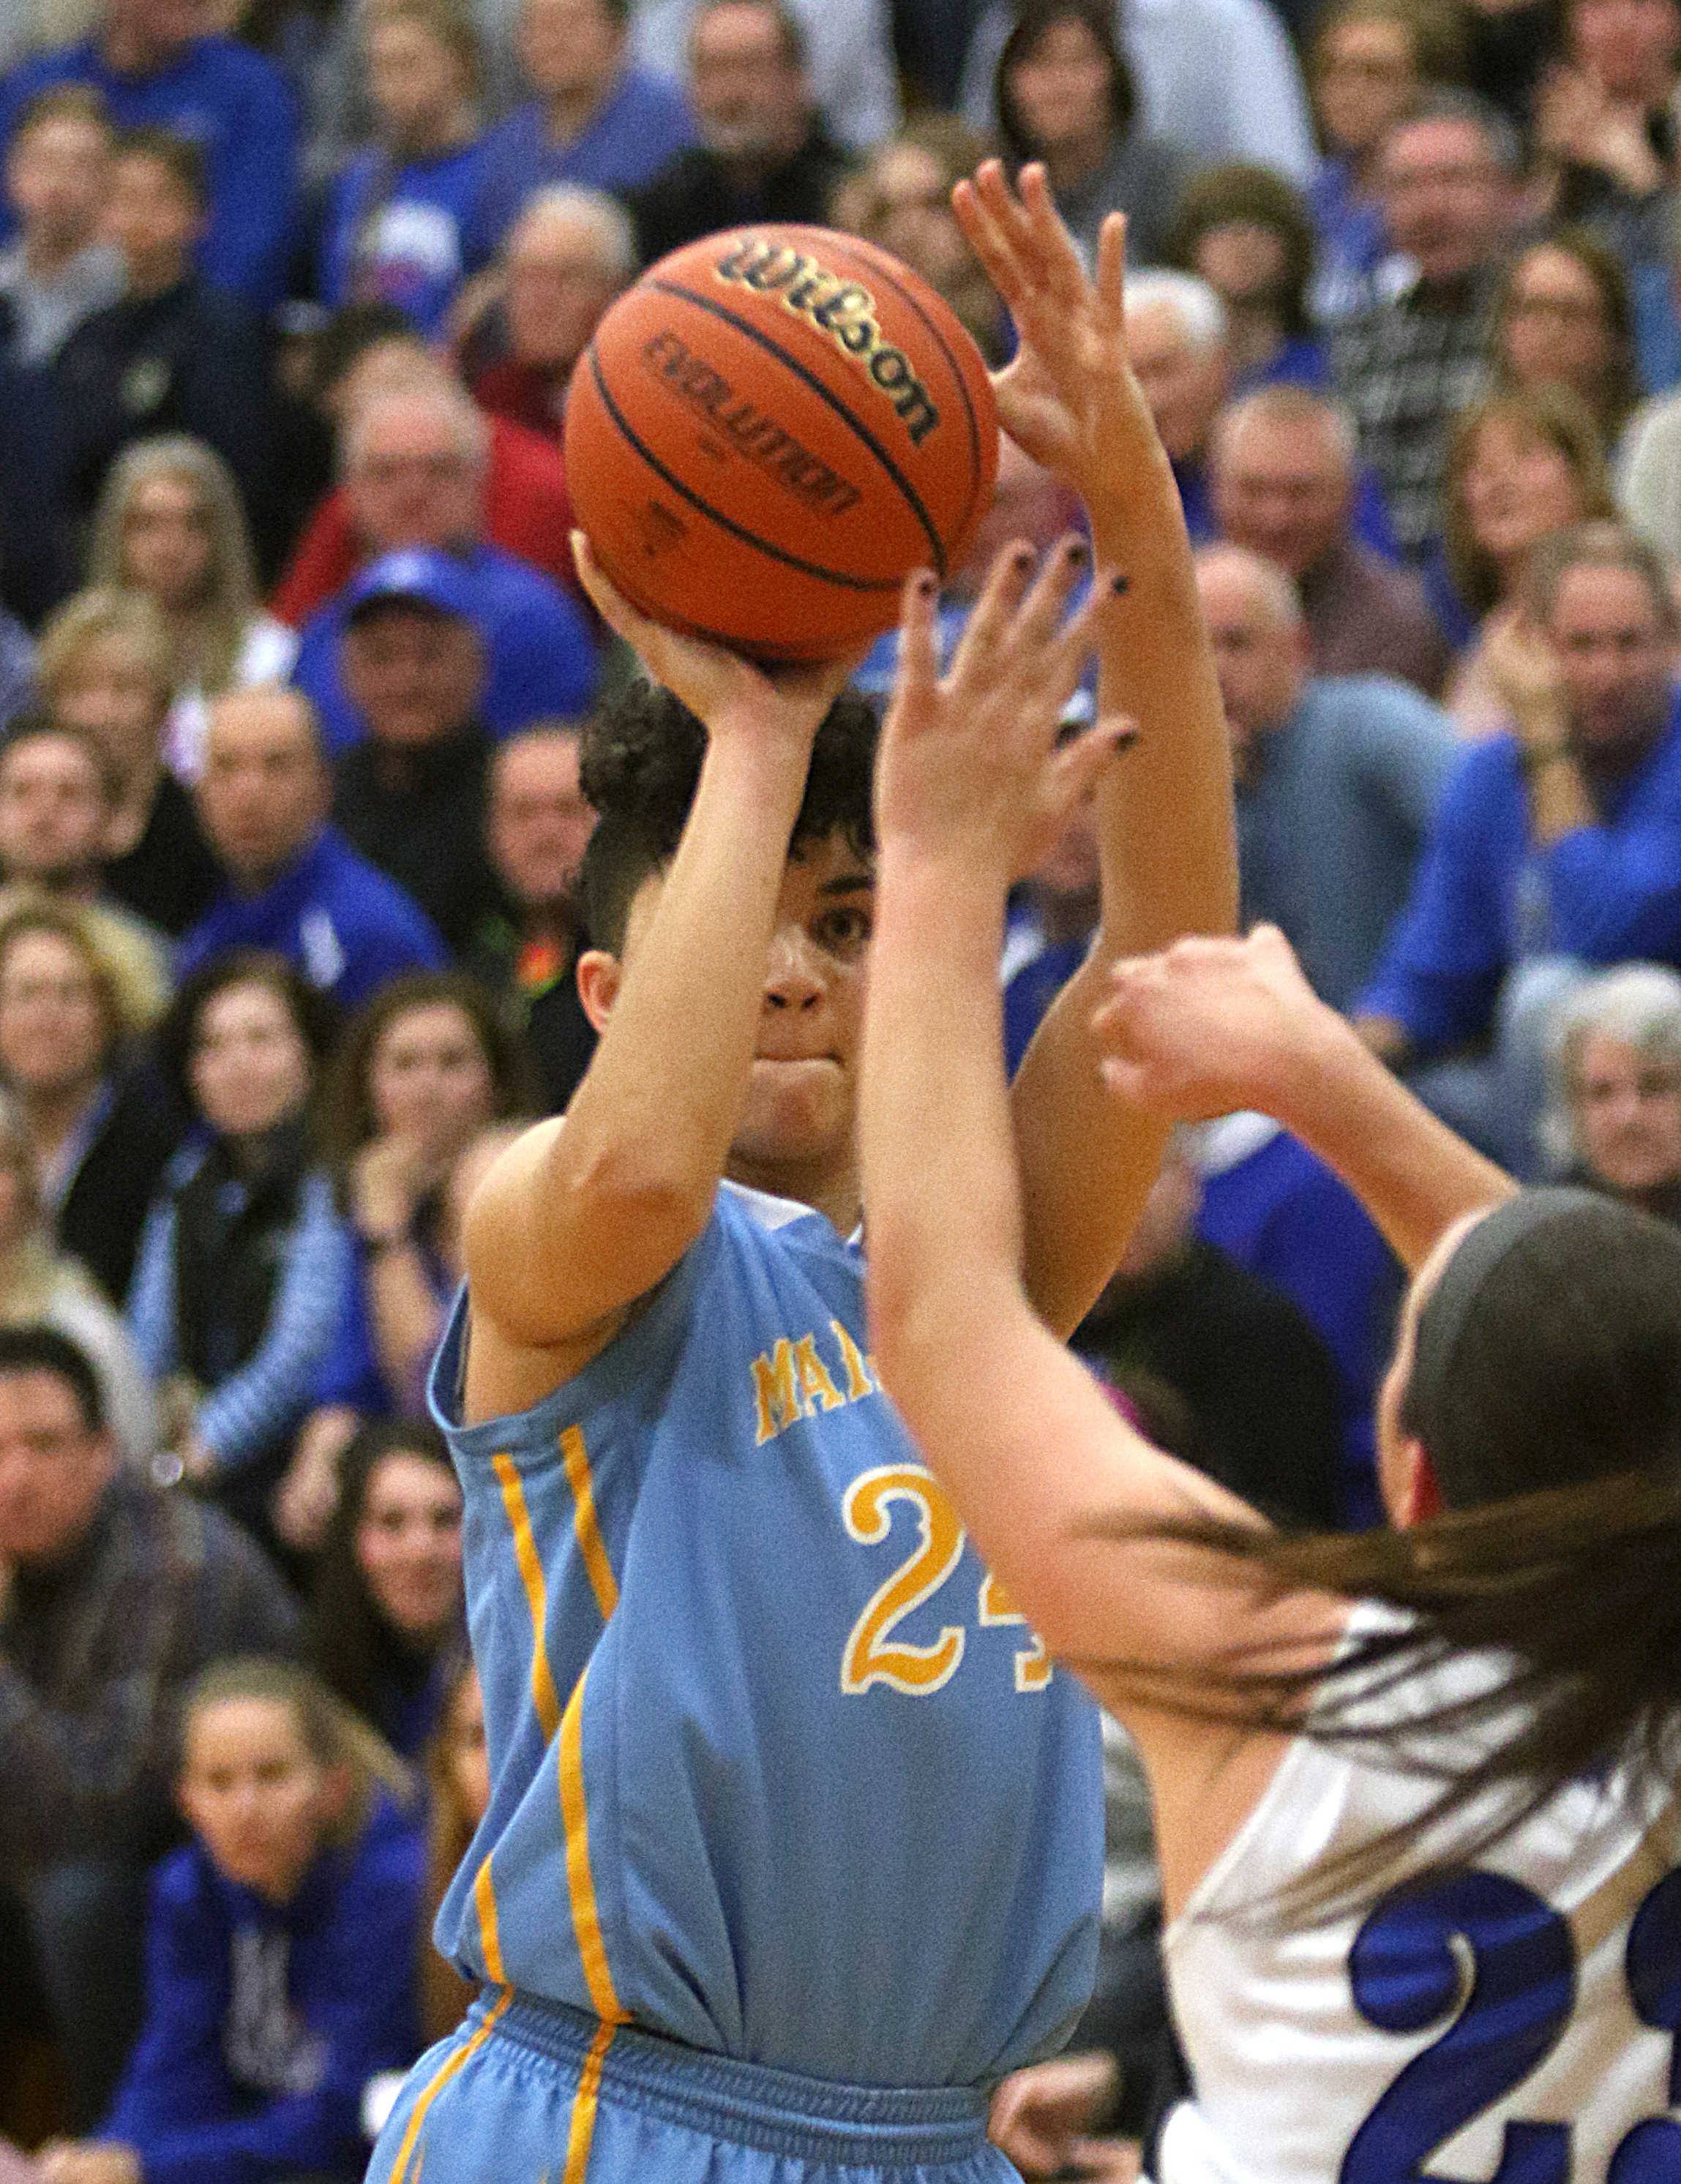 Maine West's Alisa Fallon lines up a jumper against Geneva during supersectional action at Addison Trail last season. She has committed to a future at West Point.